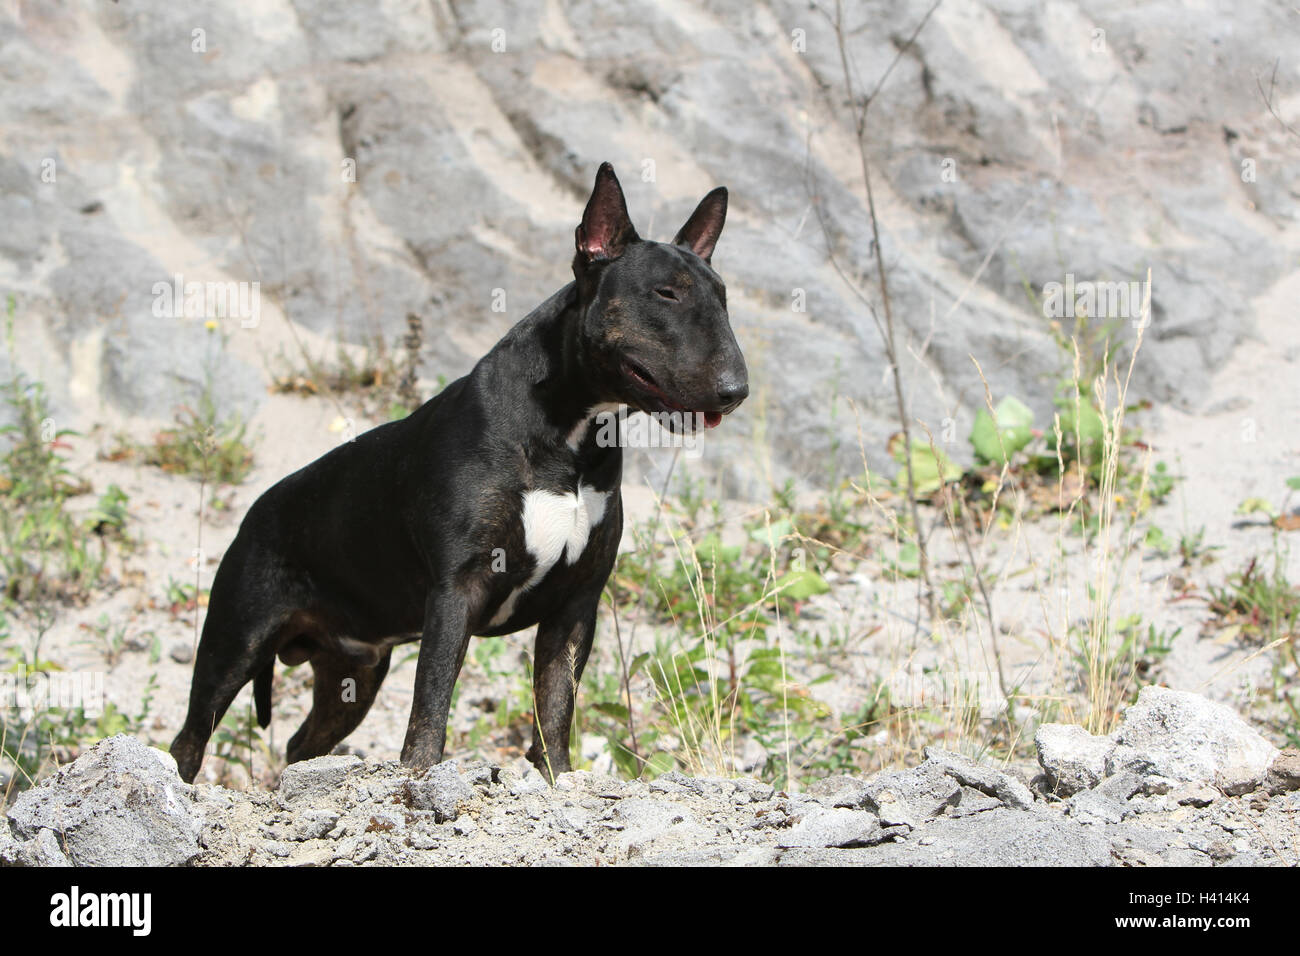 Dog English Bull Terrier / bully / Gladator standing rock black nature natural - Stock Image